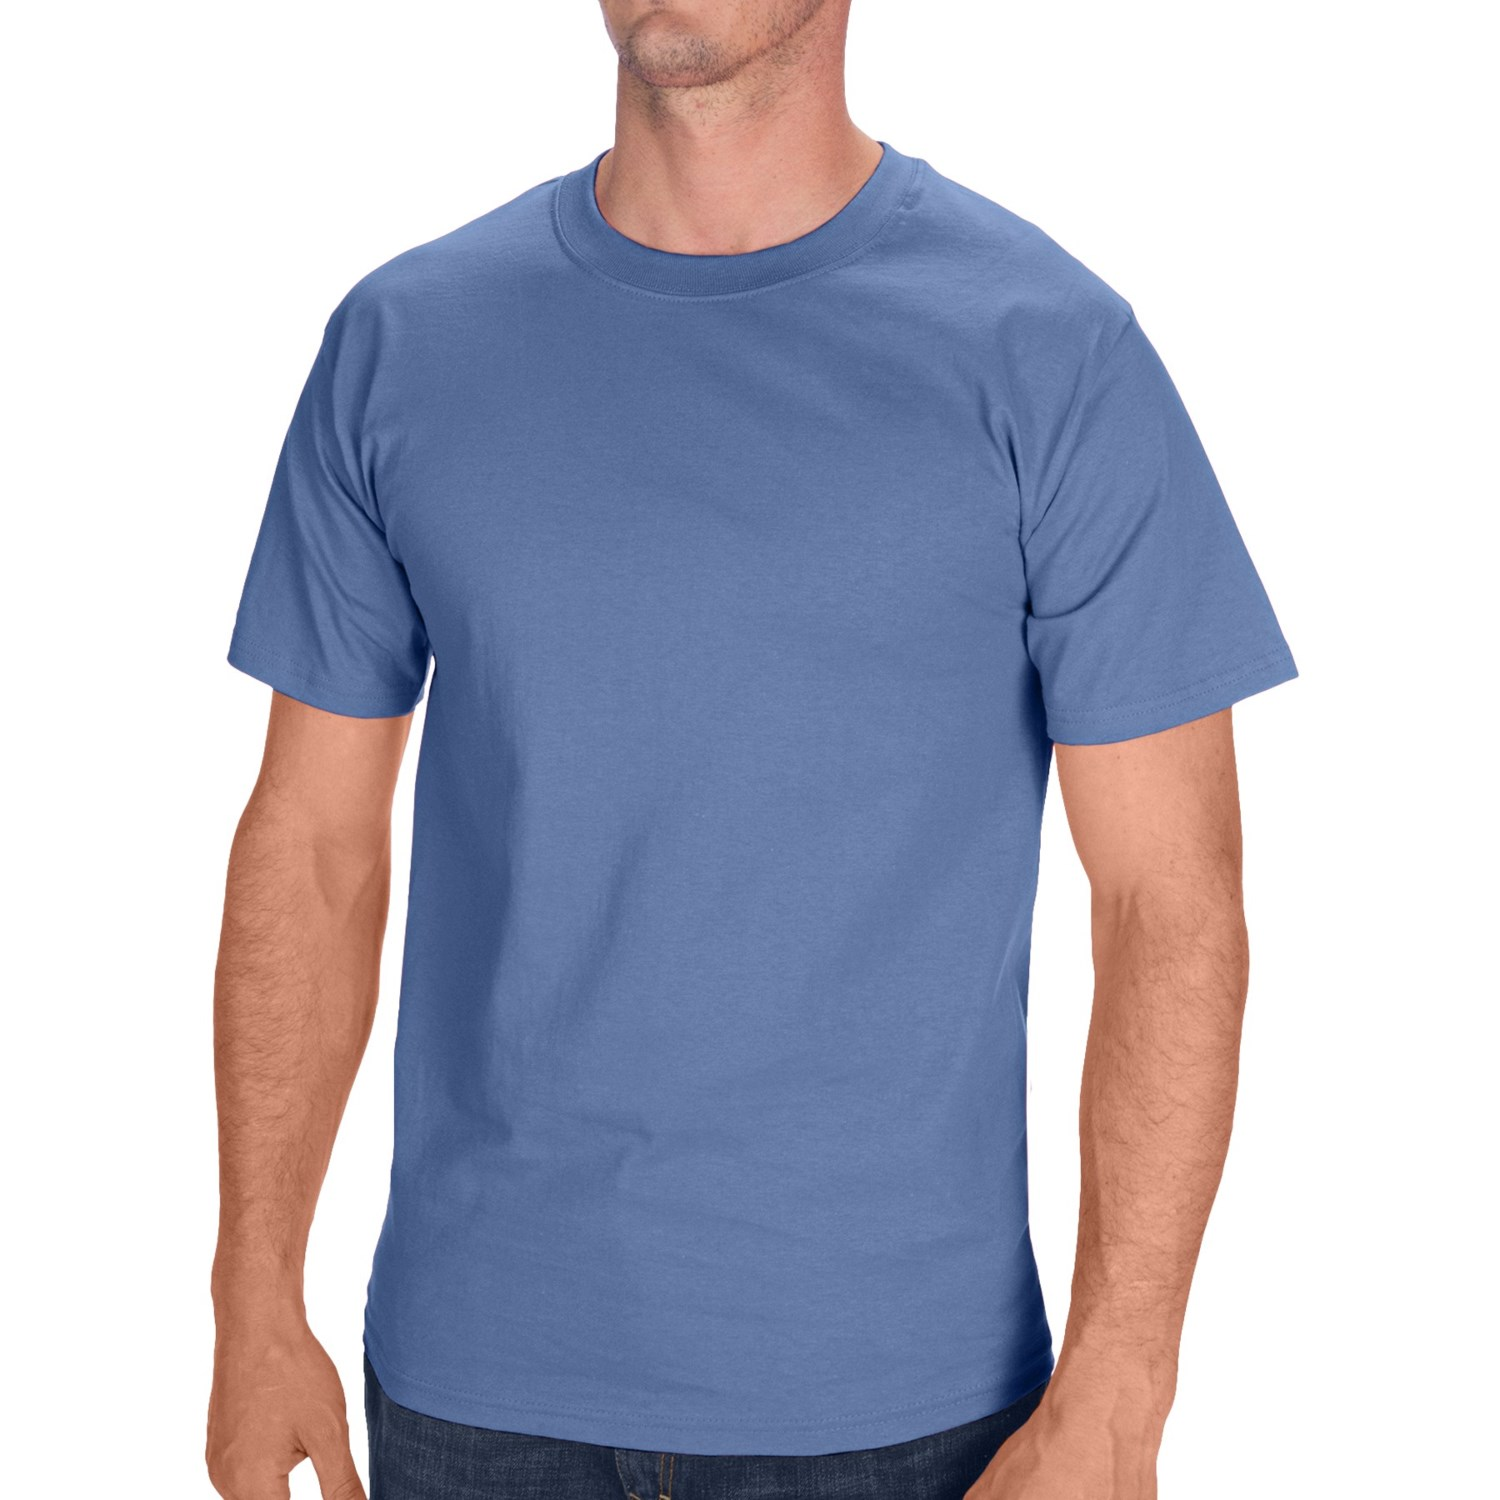 hanes tagless cotton t shirt short sleeve for men and